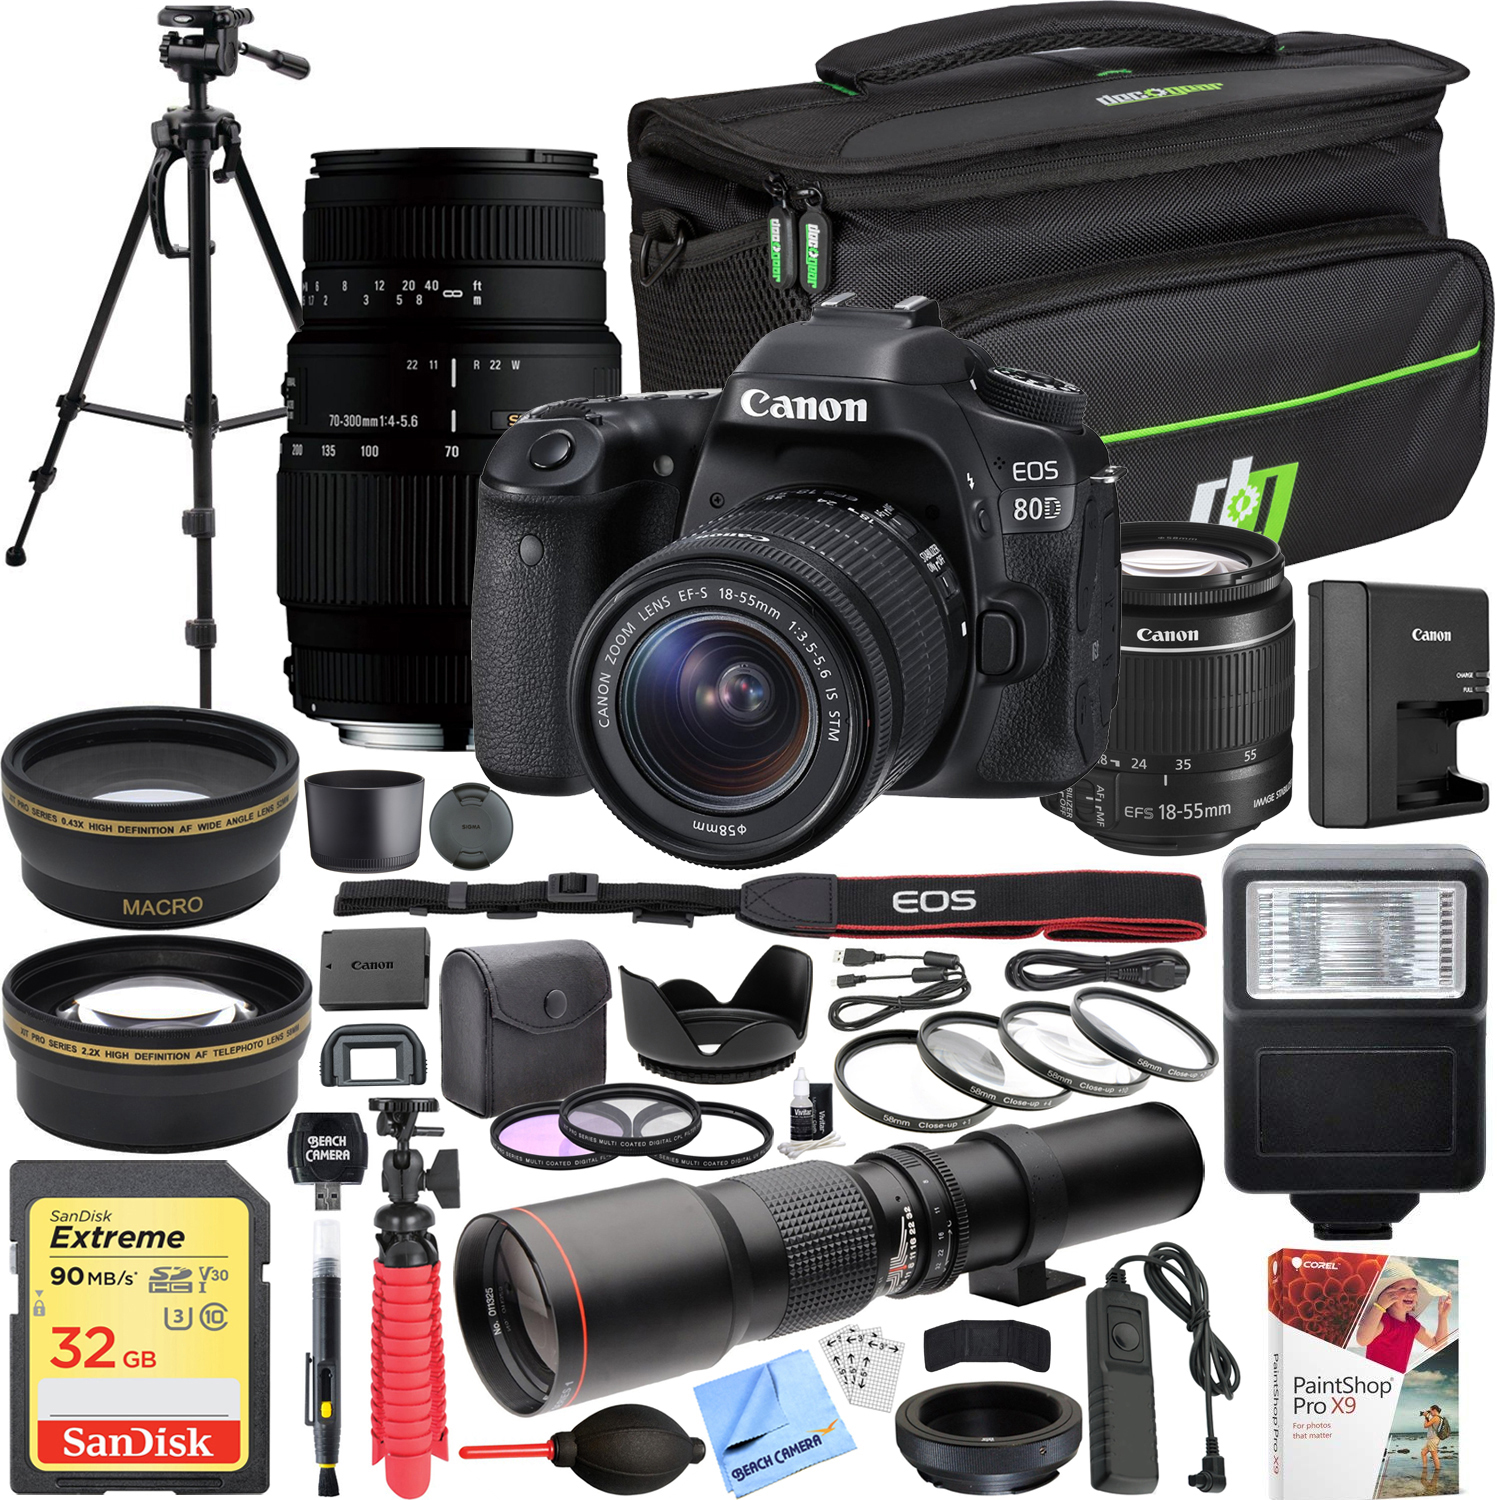 ... Kit 18 135mm Is Usm Wifi Hitam 2269313 110171049 by . Source · Canon Eos 80d 242 Mp Cmos Dslr Camera W Ef S 18 55mm Sigma 75 70d